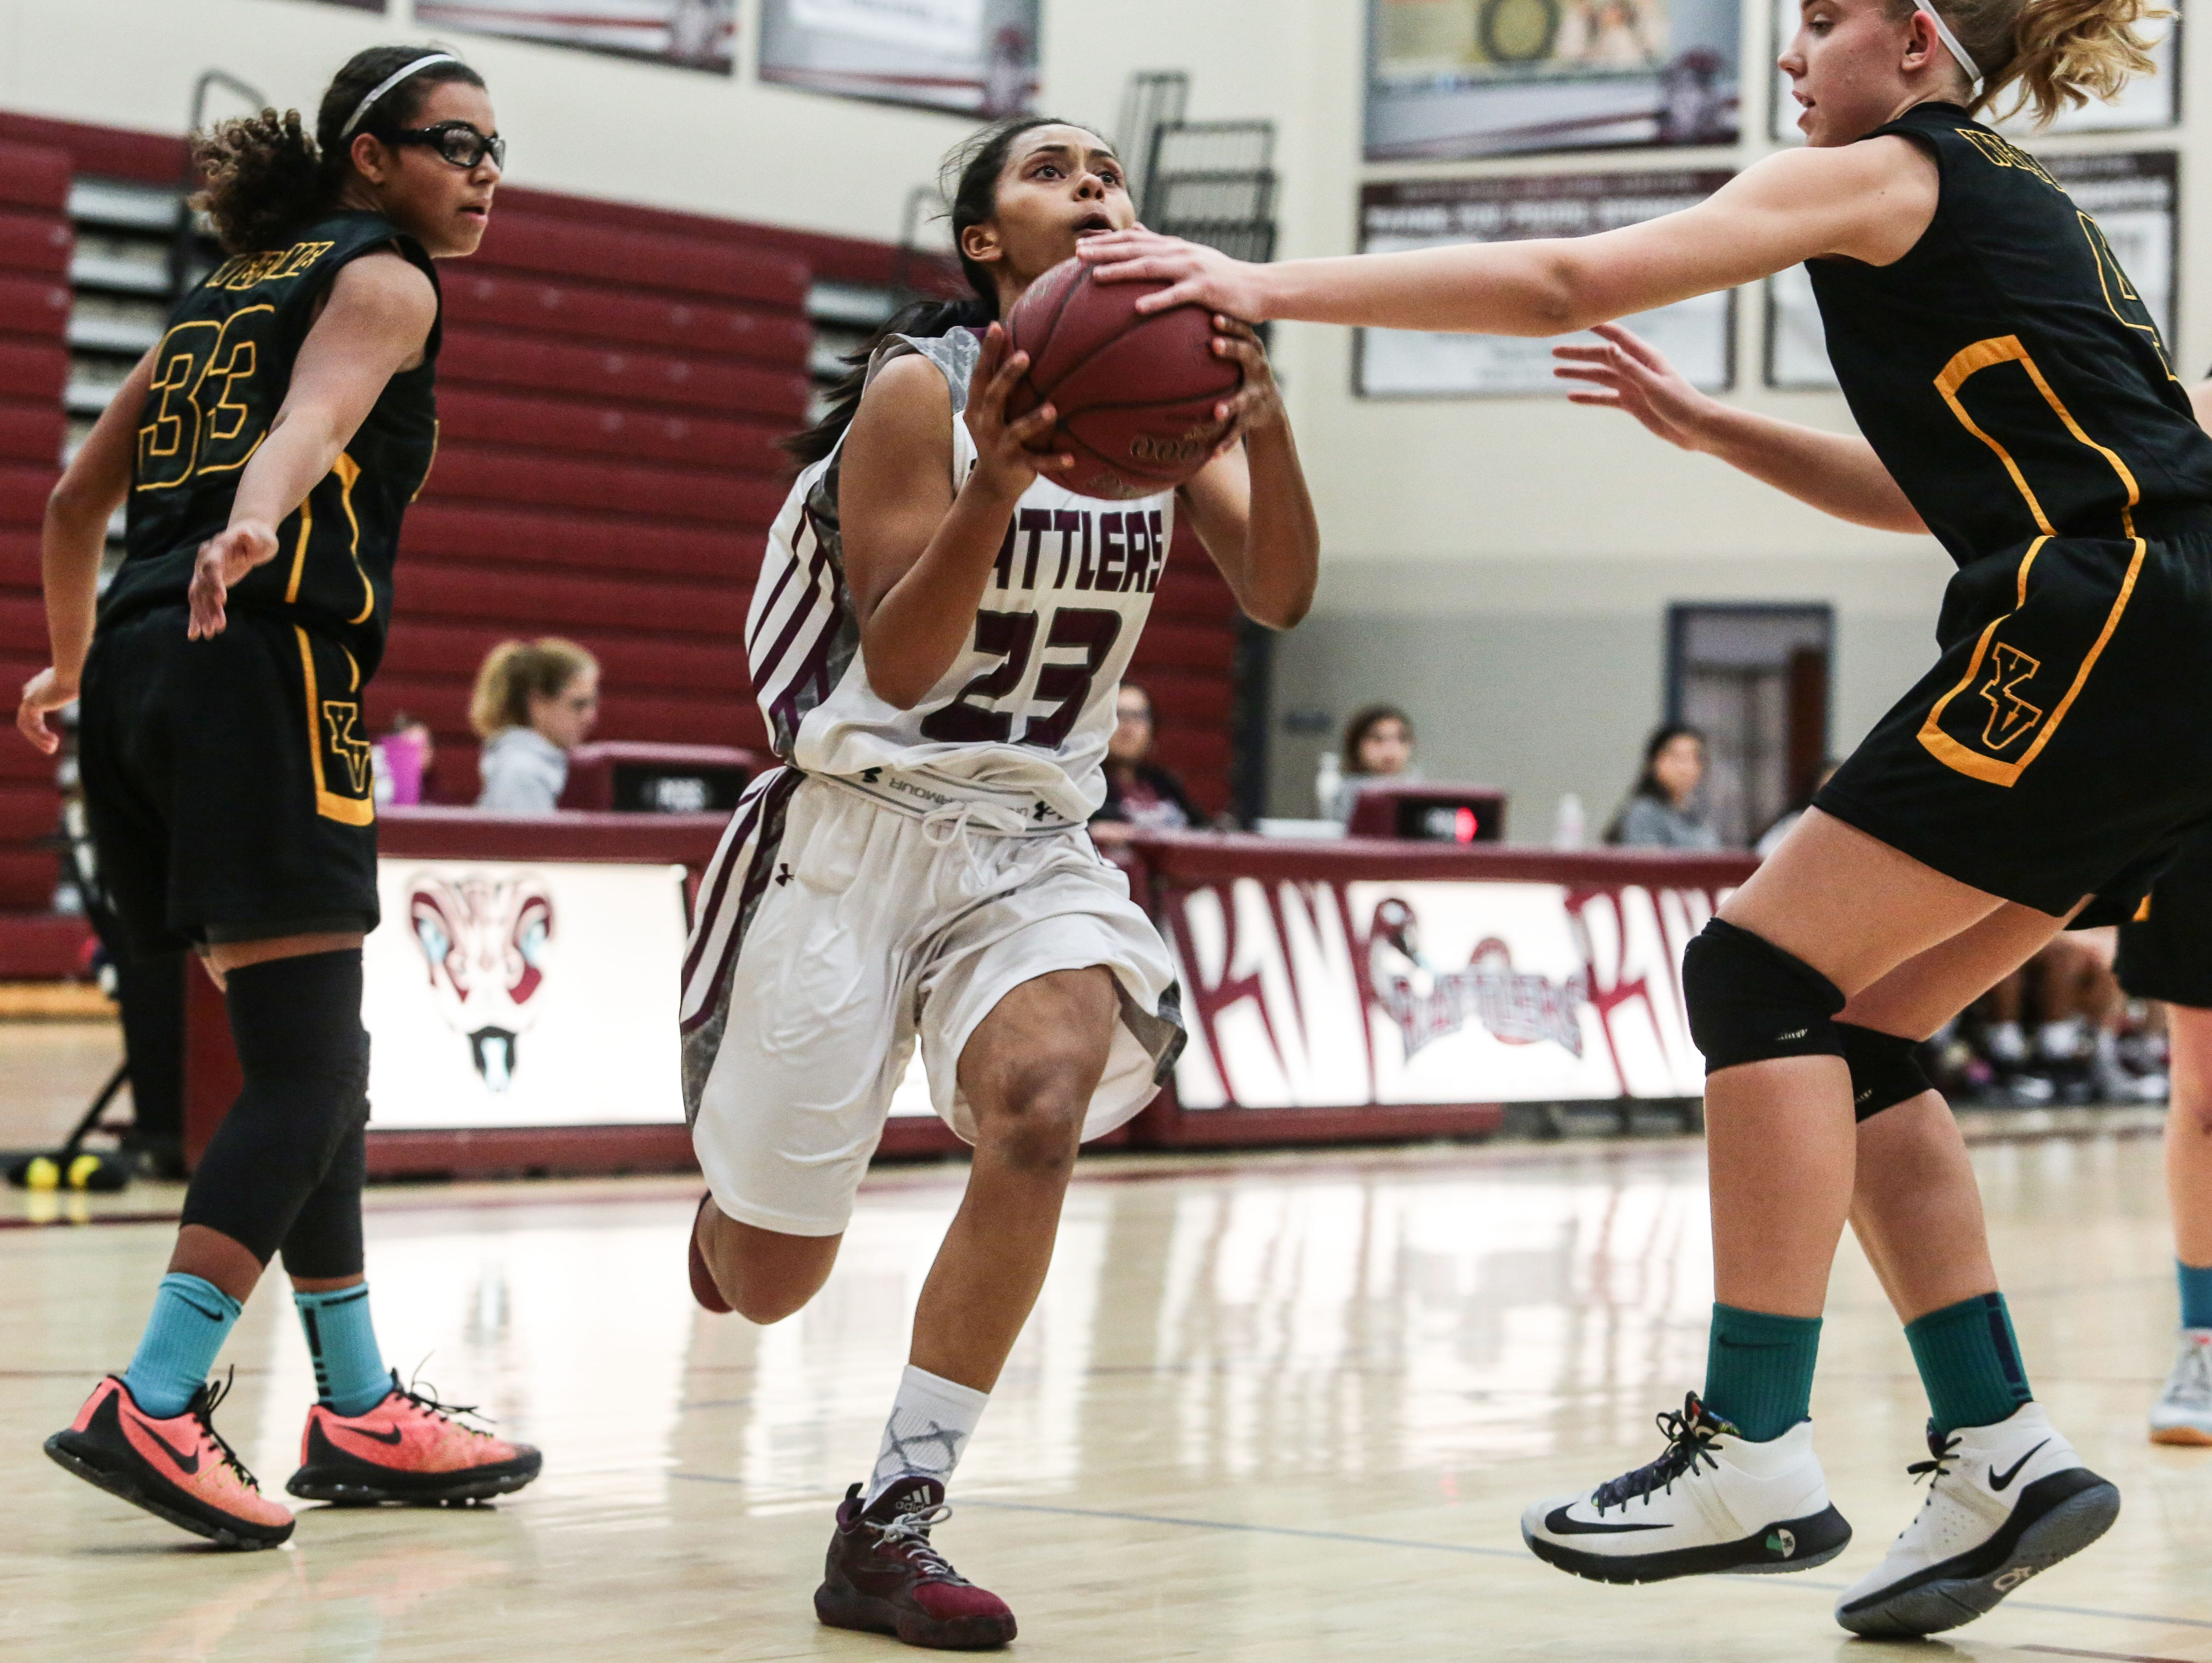 Rancho Mirage's Phoenix Chirwa in action against Yucca Valley on Thursday, February 2, 2017 in Rancho Mirage.